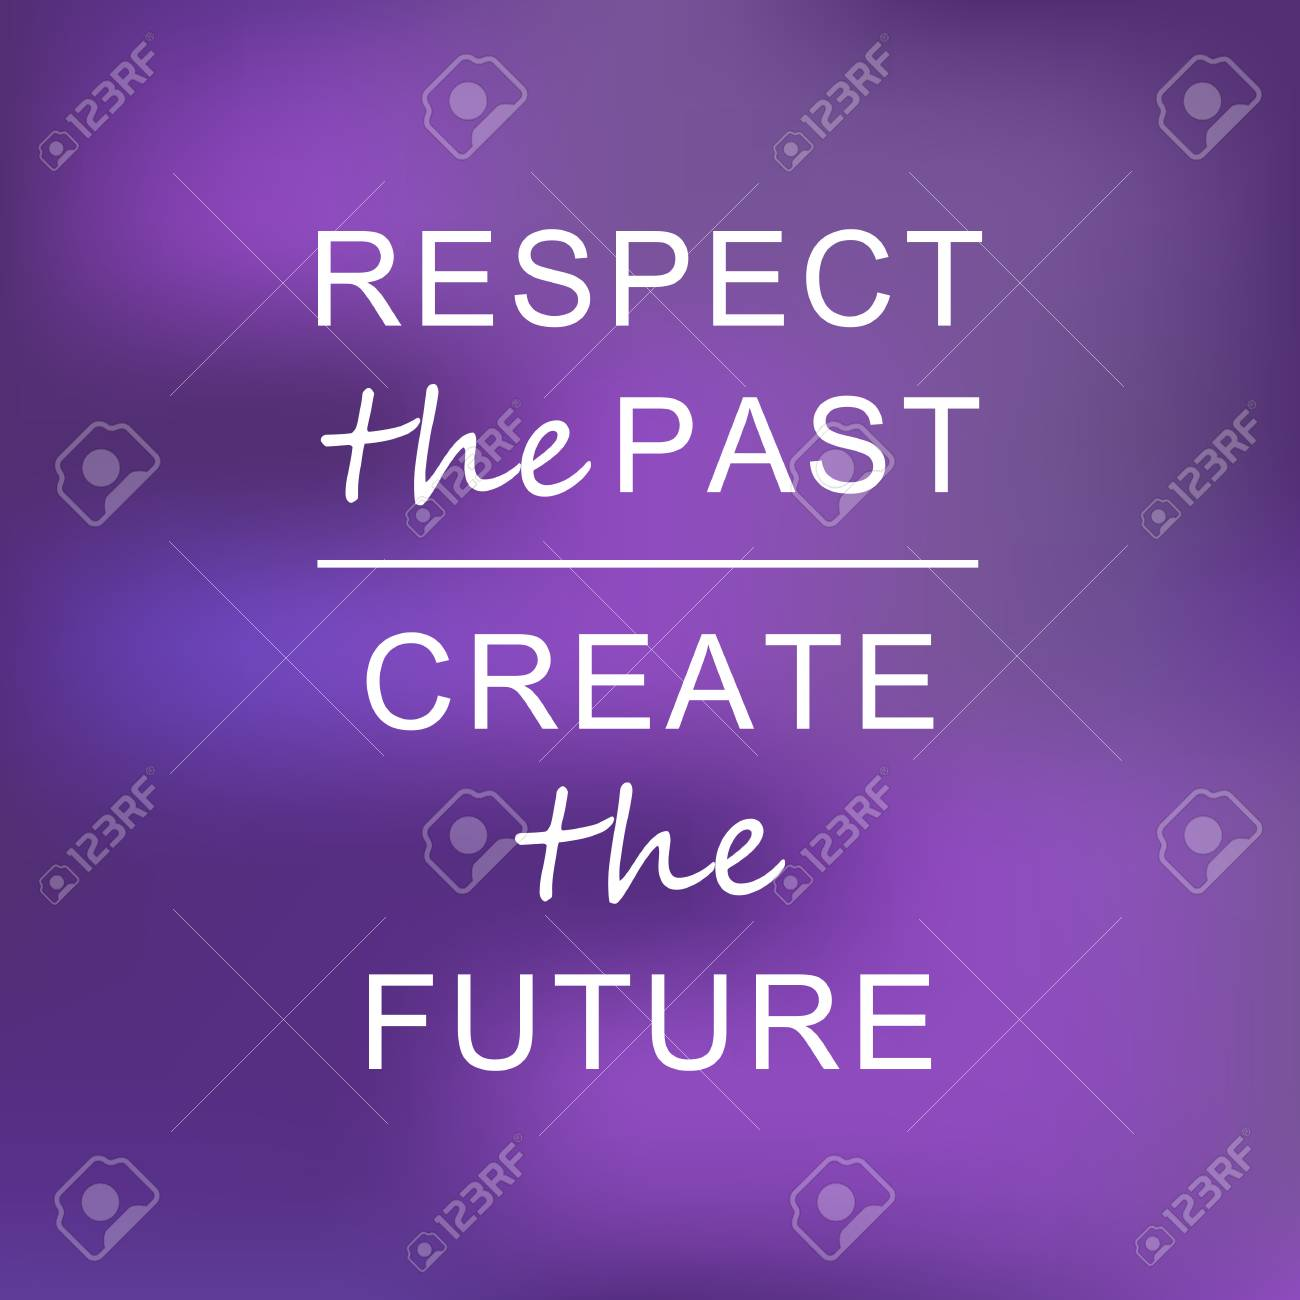 Motivational Quote On A Colorful Blurred Background. Respect The Past,  Create The Future.